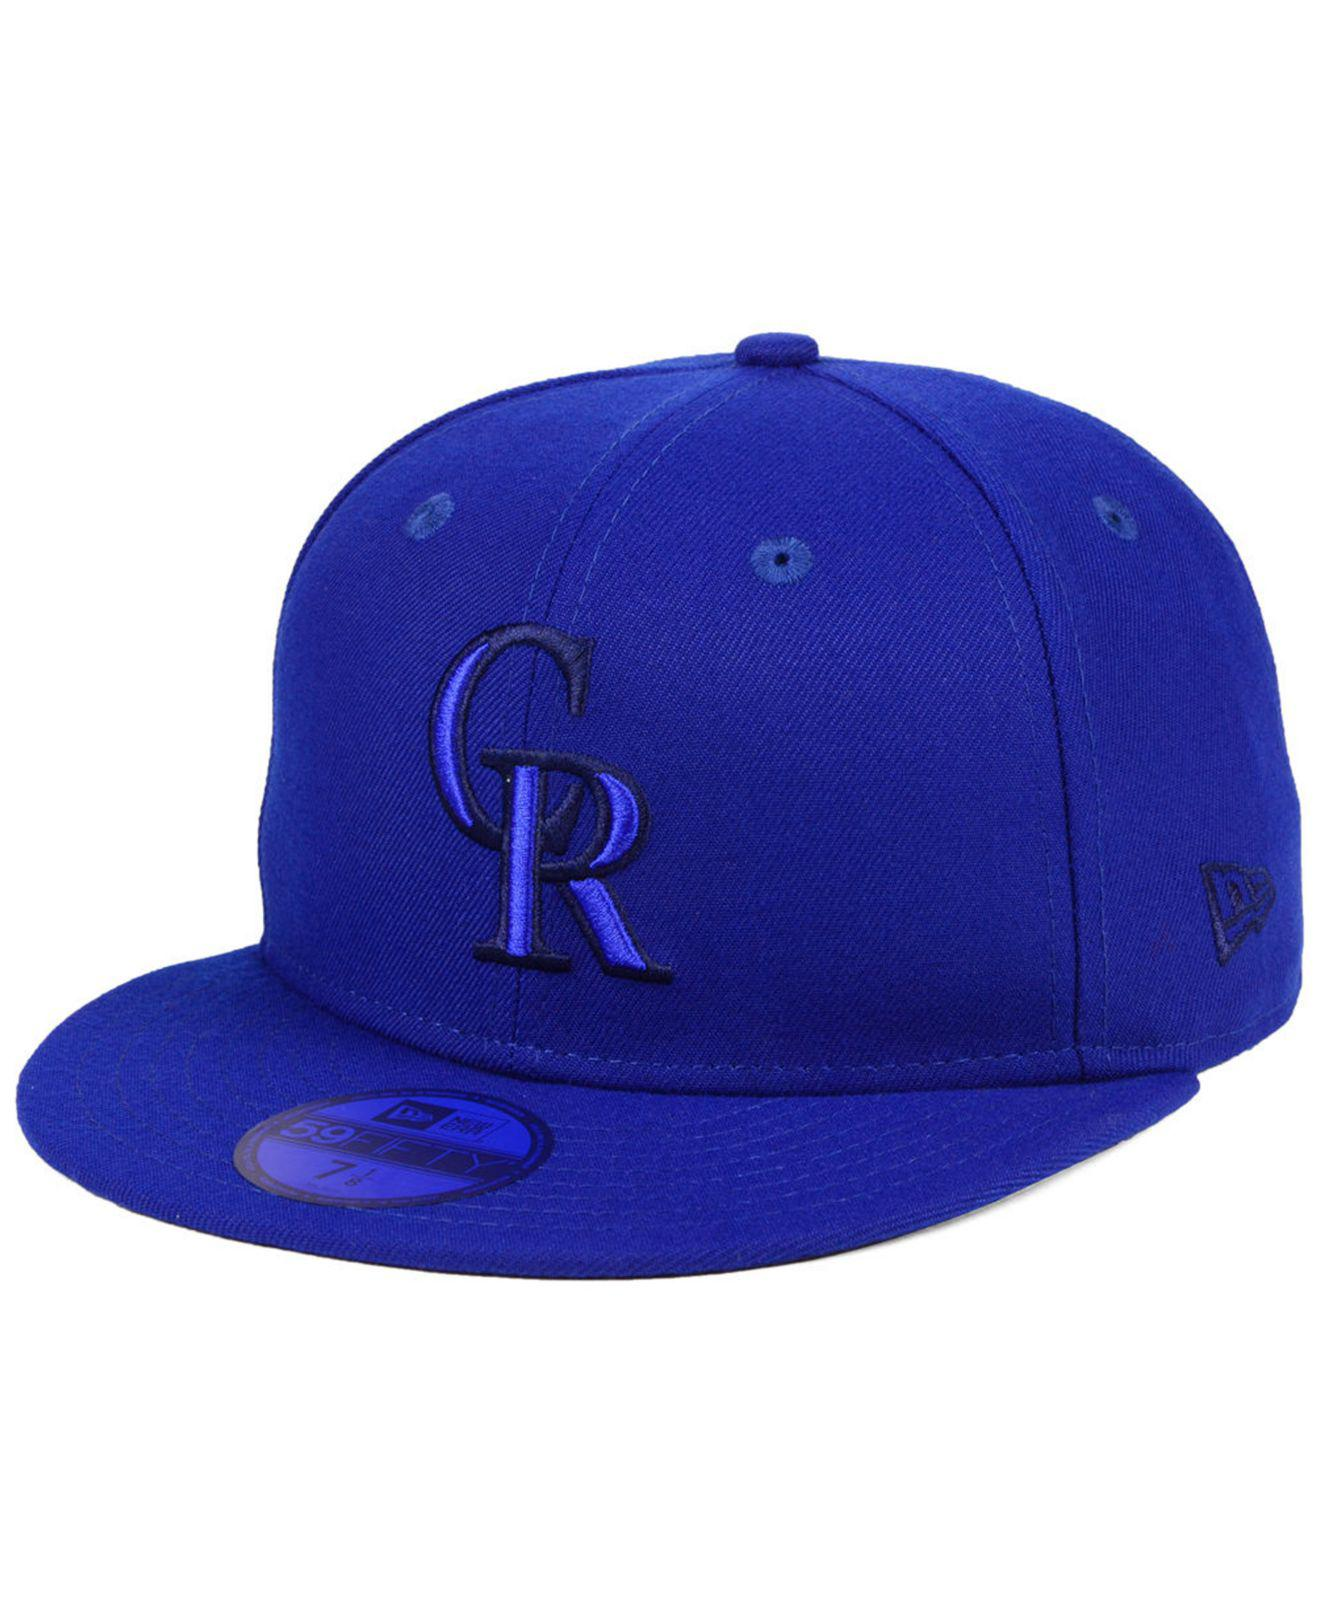 buy popular 8ab9c 18089 ... coupon for lyst ktz colorado rockies prism color pack 59fifty fitted cap  in 79324 8e325